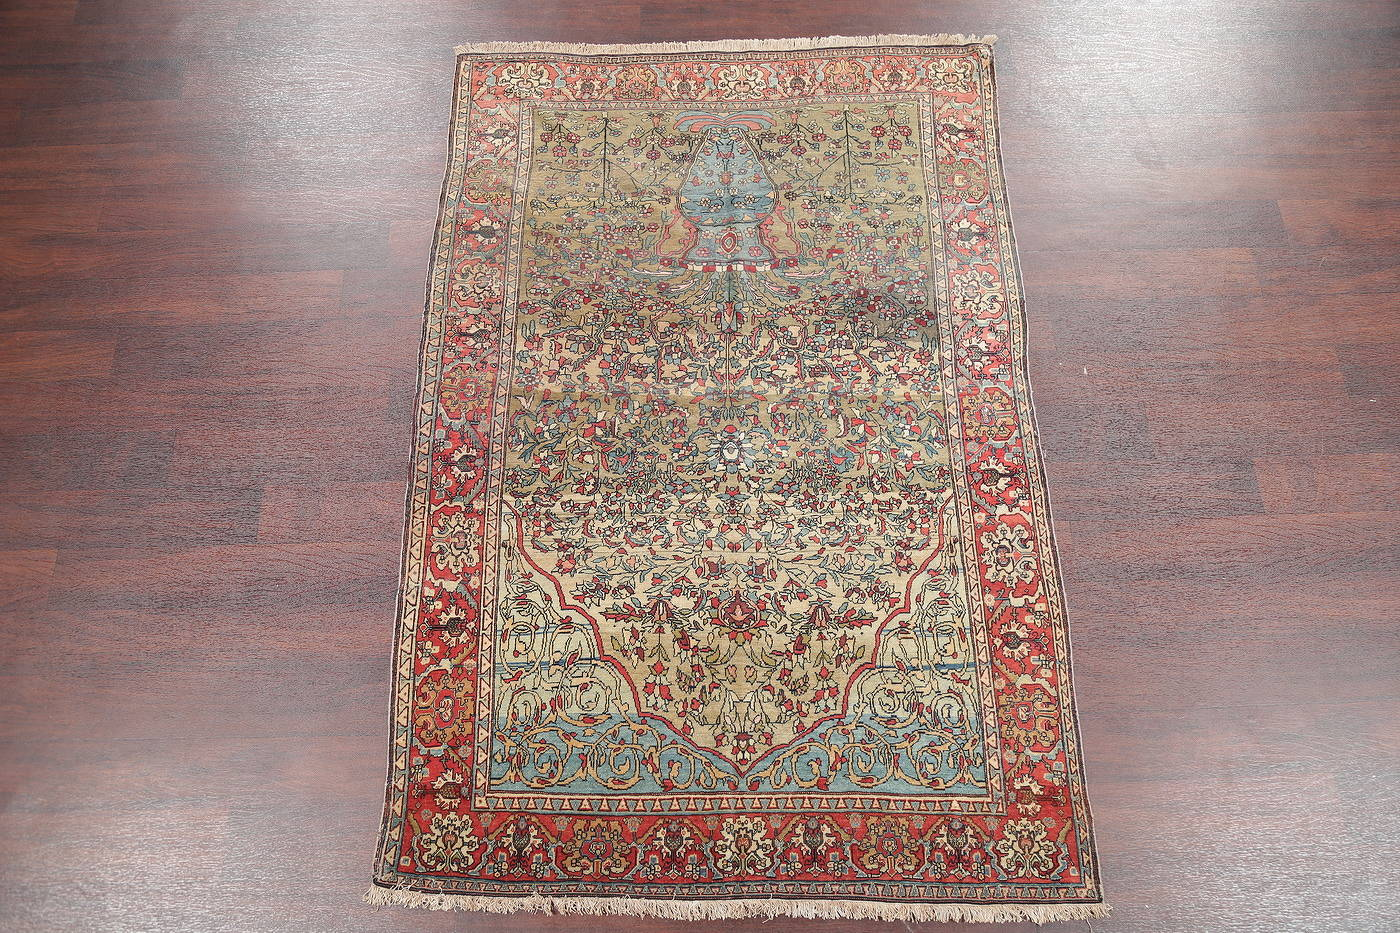 Antique Green Pictorial Kashan Mohtasham Persian Area Rug 4x6 image 2